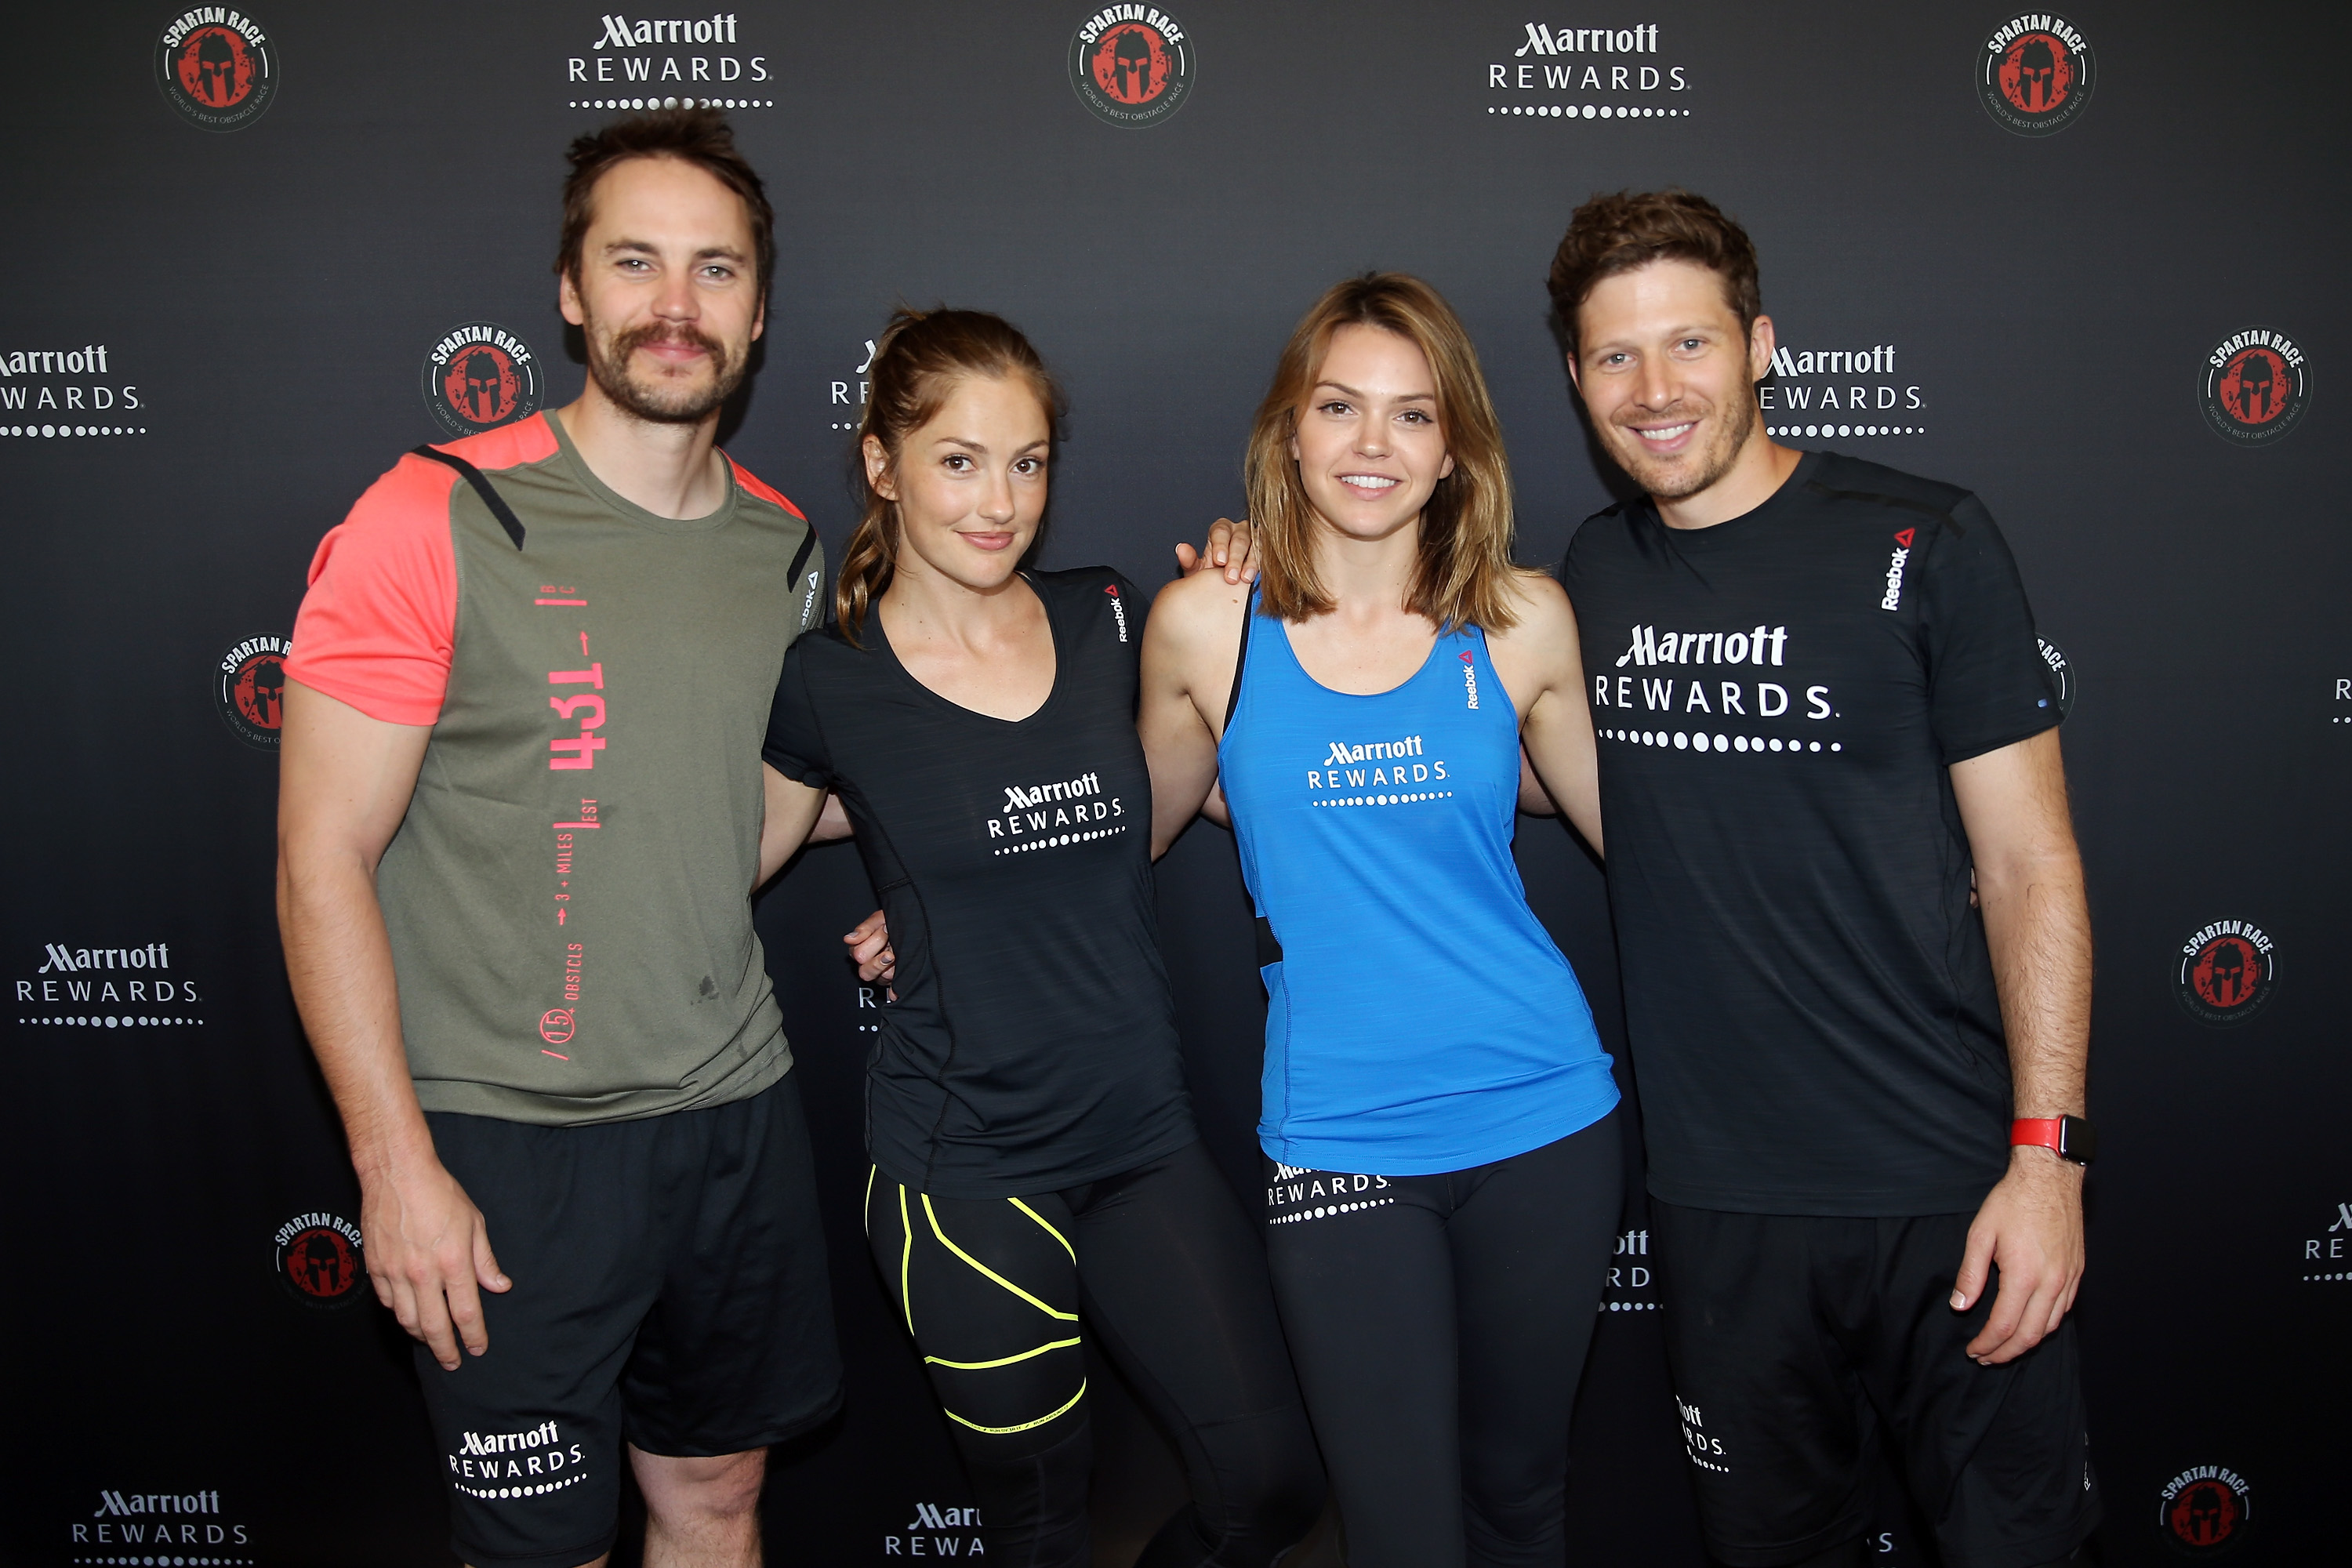 RICHMOND, IL - JUNE 11:  Taylor Kitsch, Minka Kelly, Aimee Teegarden and Zach Gilford attend as Marriott Rewards reunites Taylor Kitsch, Minka Kelly, Zach Gilford and Aimee Teegarden of  Friday Night Lights  for Spartan Super Race on June 11, 2016 in Richmond, Illinois.  (Photo by Tasos Katopodis/Getty Images for Marriott)